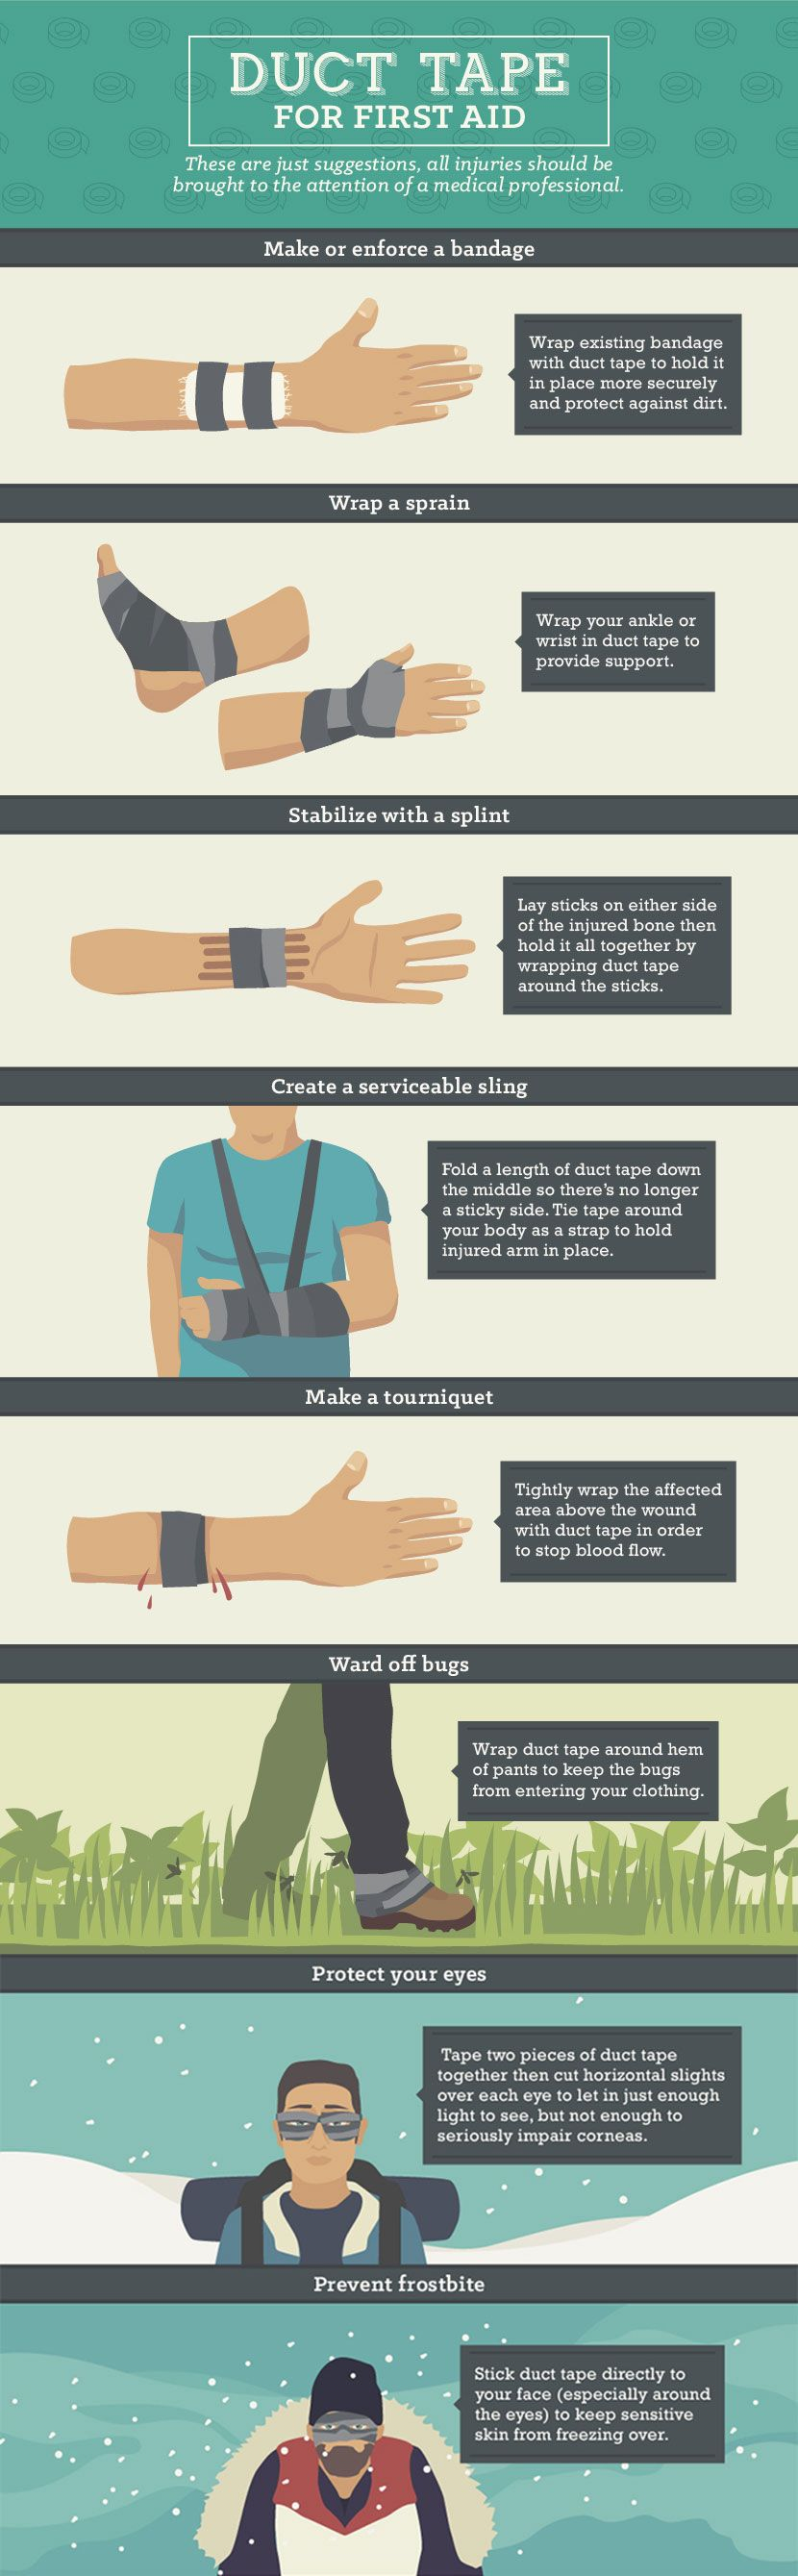 Duct Tape Guide - Using Duct Tape for First Aid